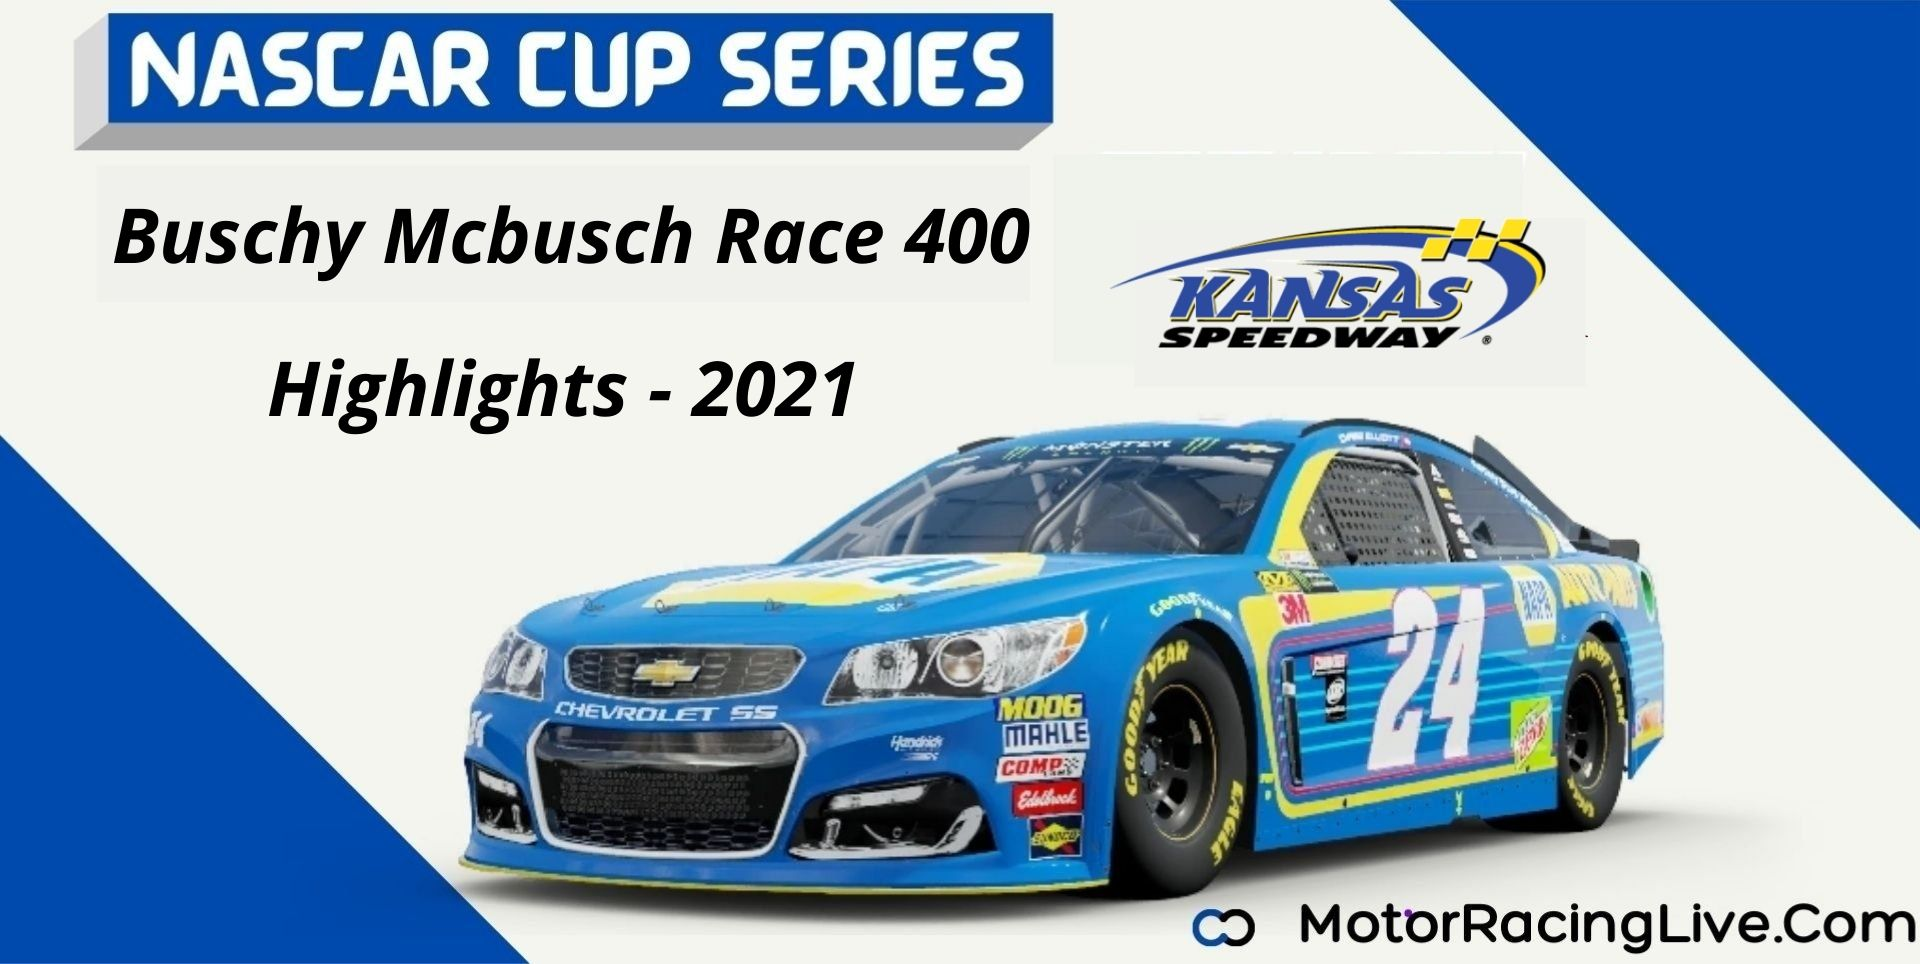 Buschy Mcbusch Race 400 Highlights 2021 NASCAR Cup Series